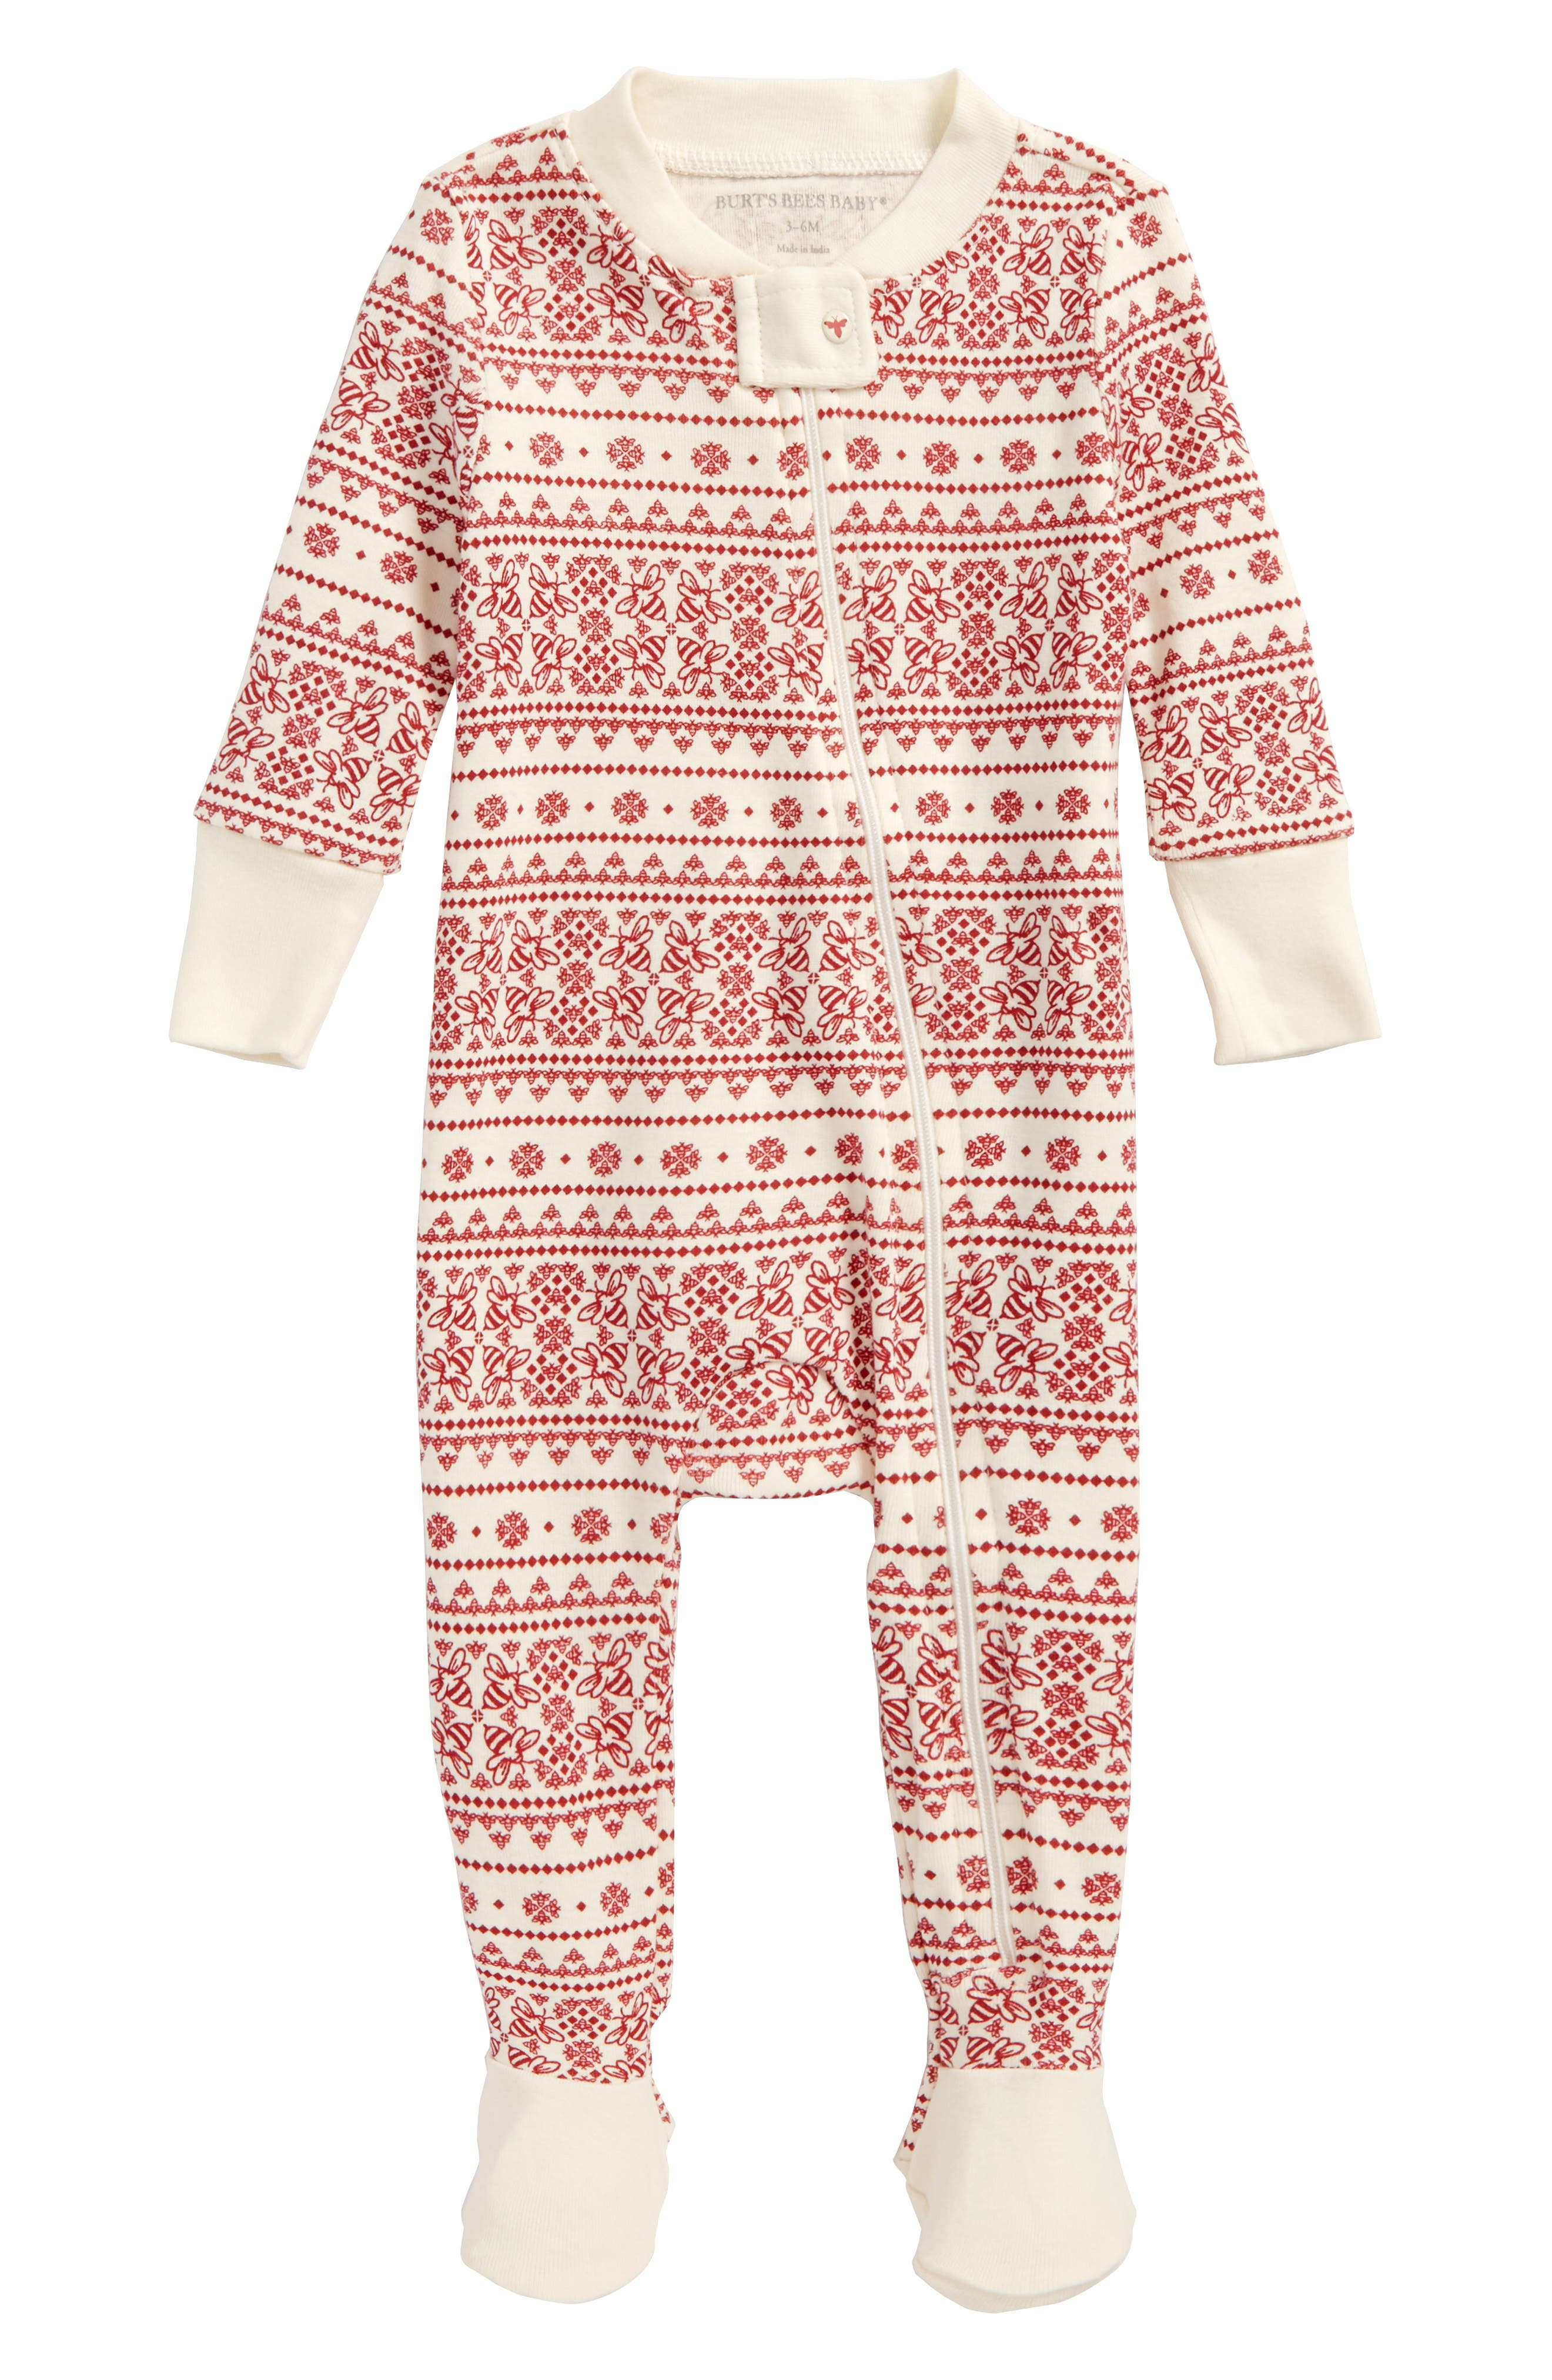 Fair Isle Fitted One-Piece Footed Pajamas,                             Main thumbnail 1, color,                             900